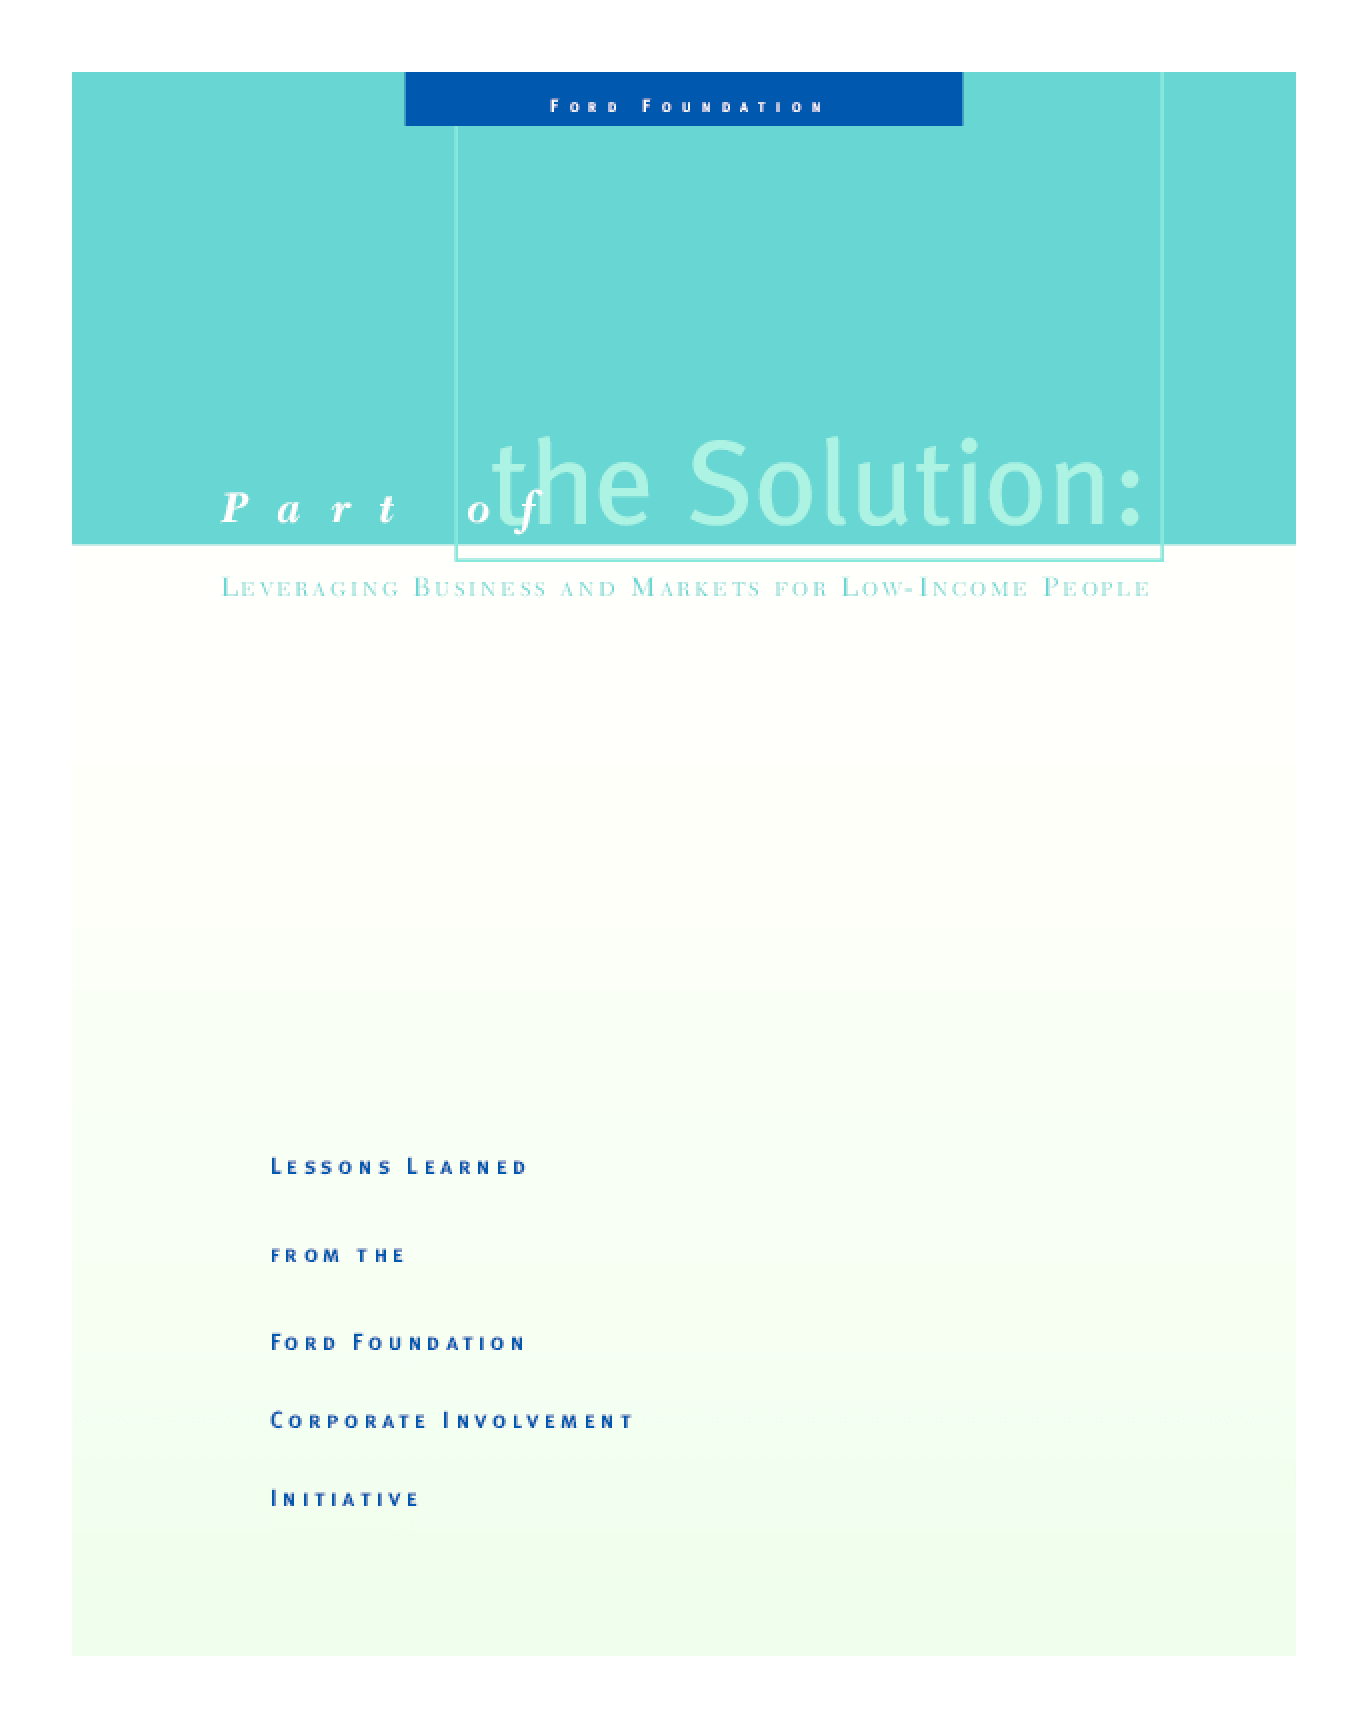 Part of the Solution: Leveraging Business and Markets for Low-Income People